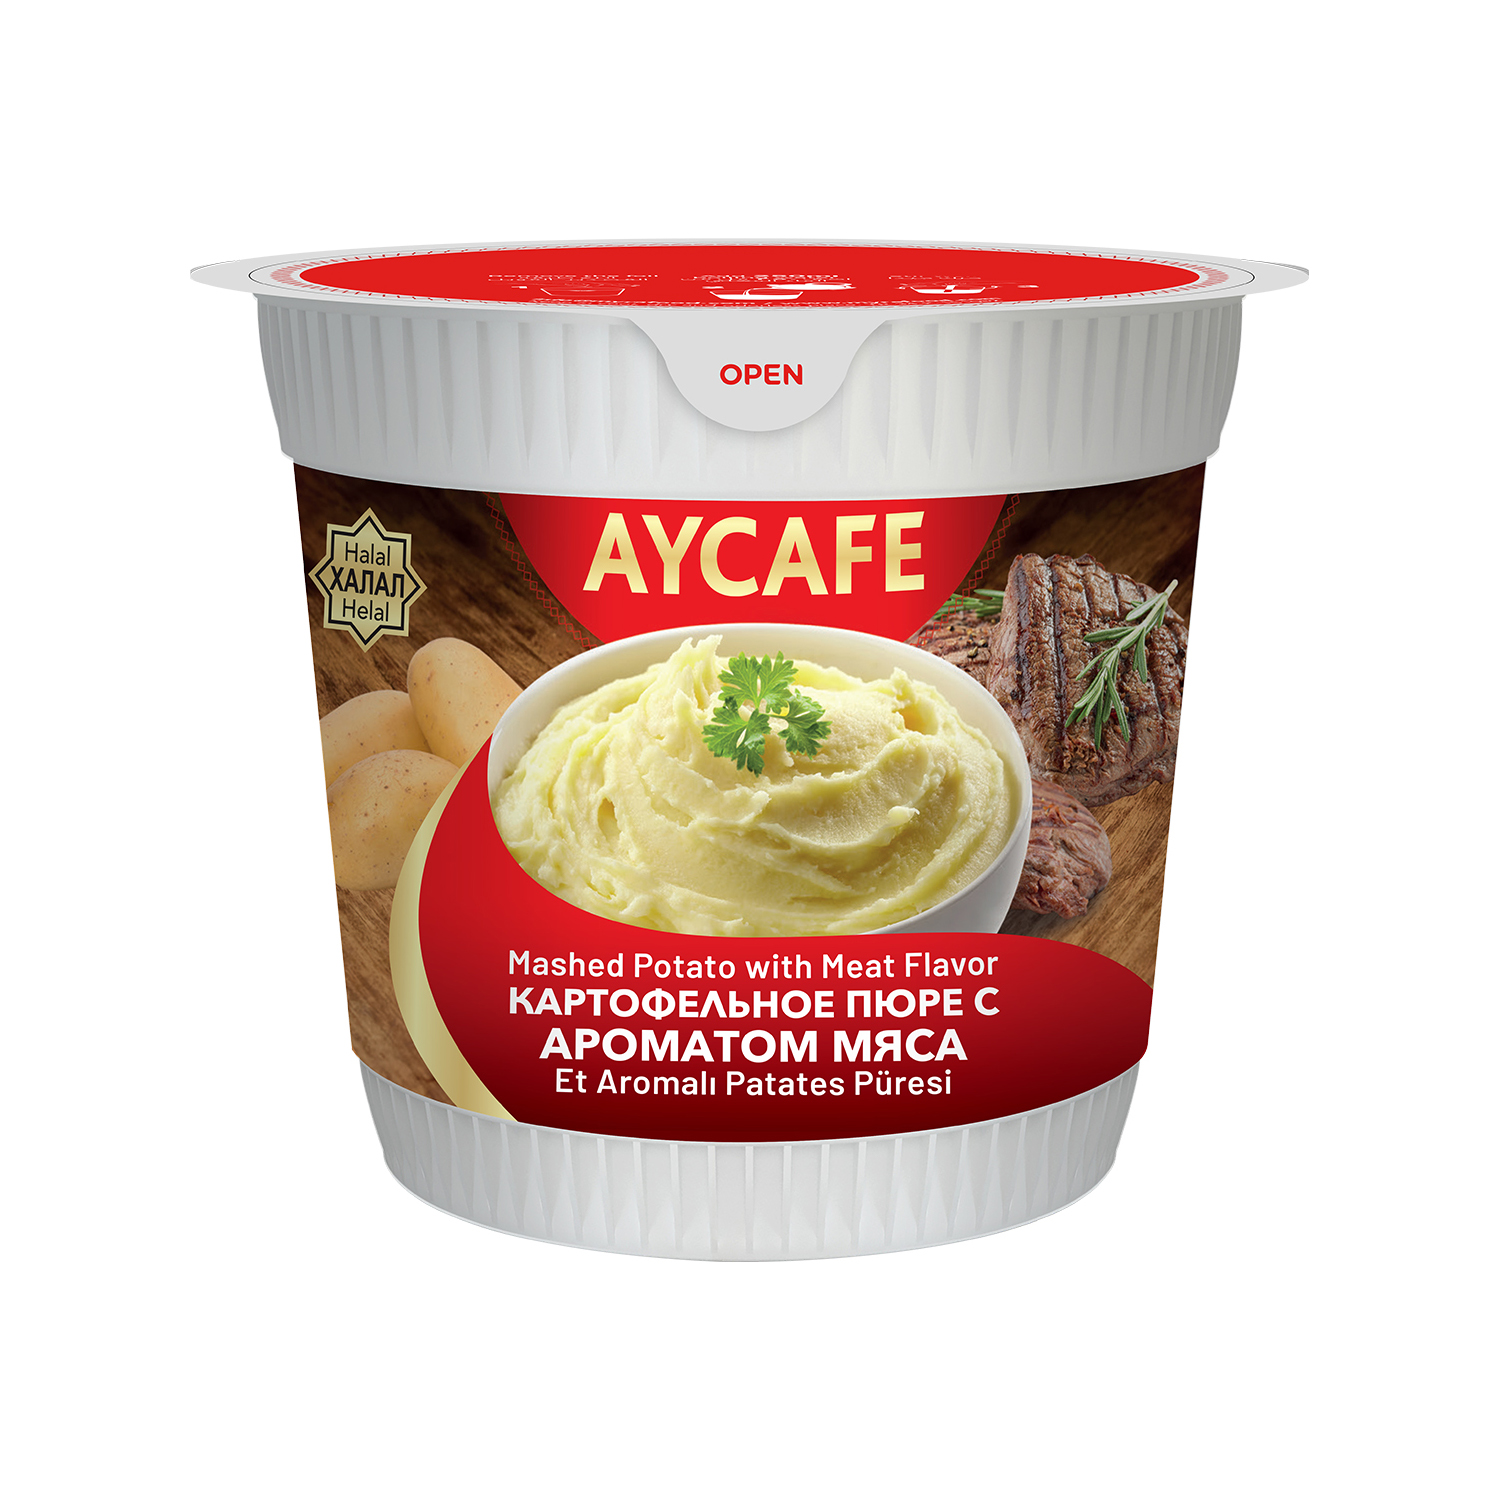 Aycafe Mashed Potato with Meat Flavor